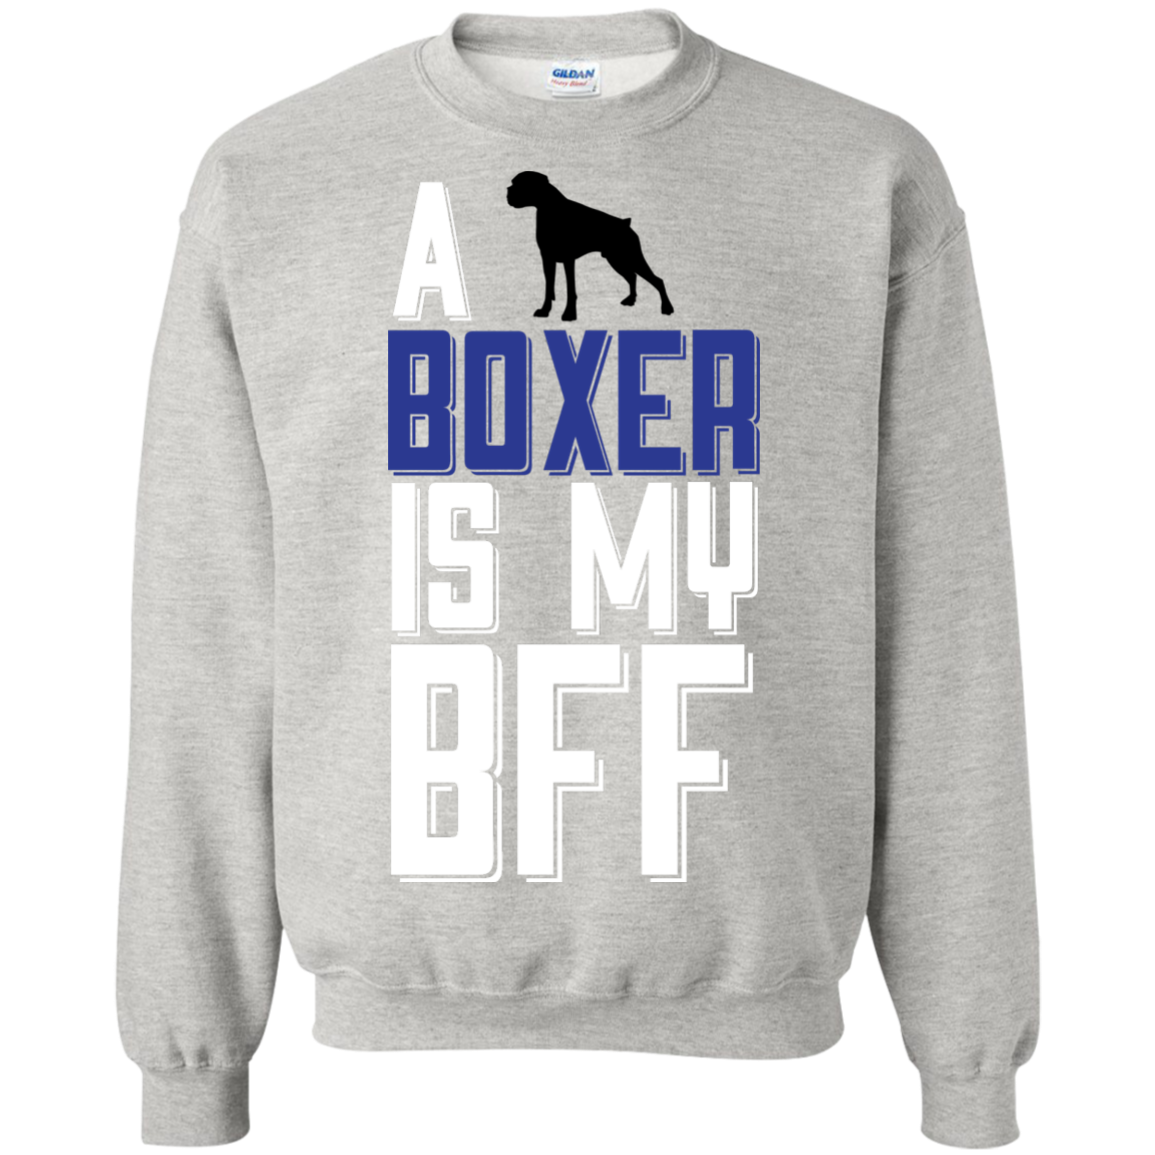 A Boxer Is My Bff  funny T-Shirt Hoodie Long sleeve Sweatshirt - The Sun Cat